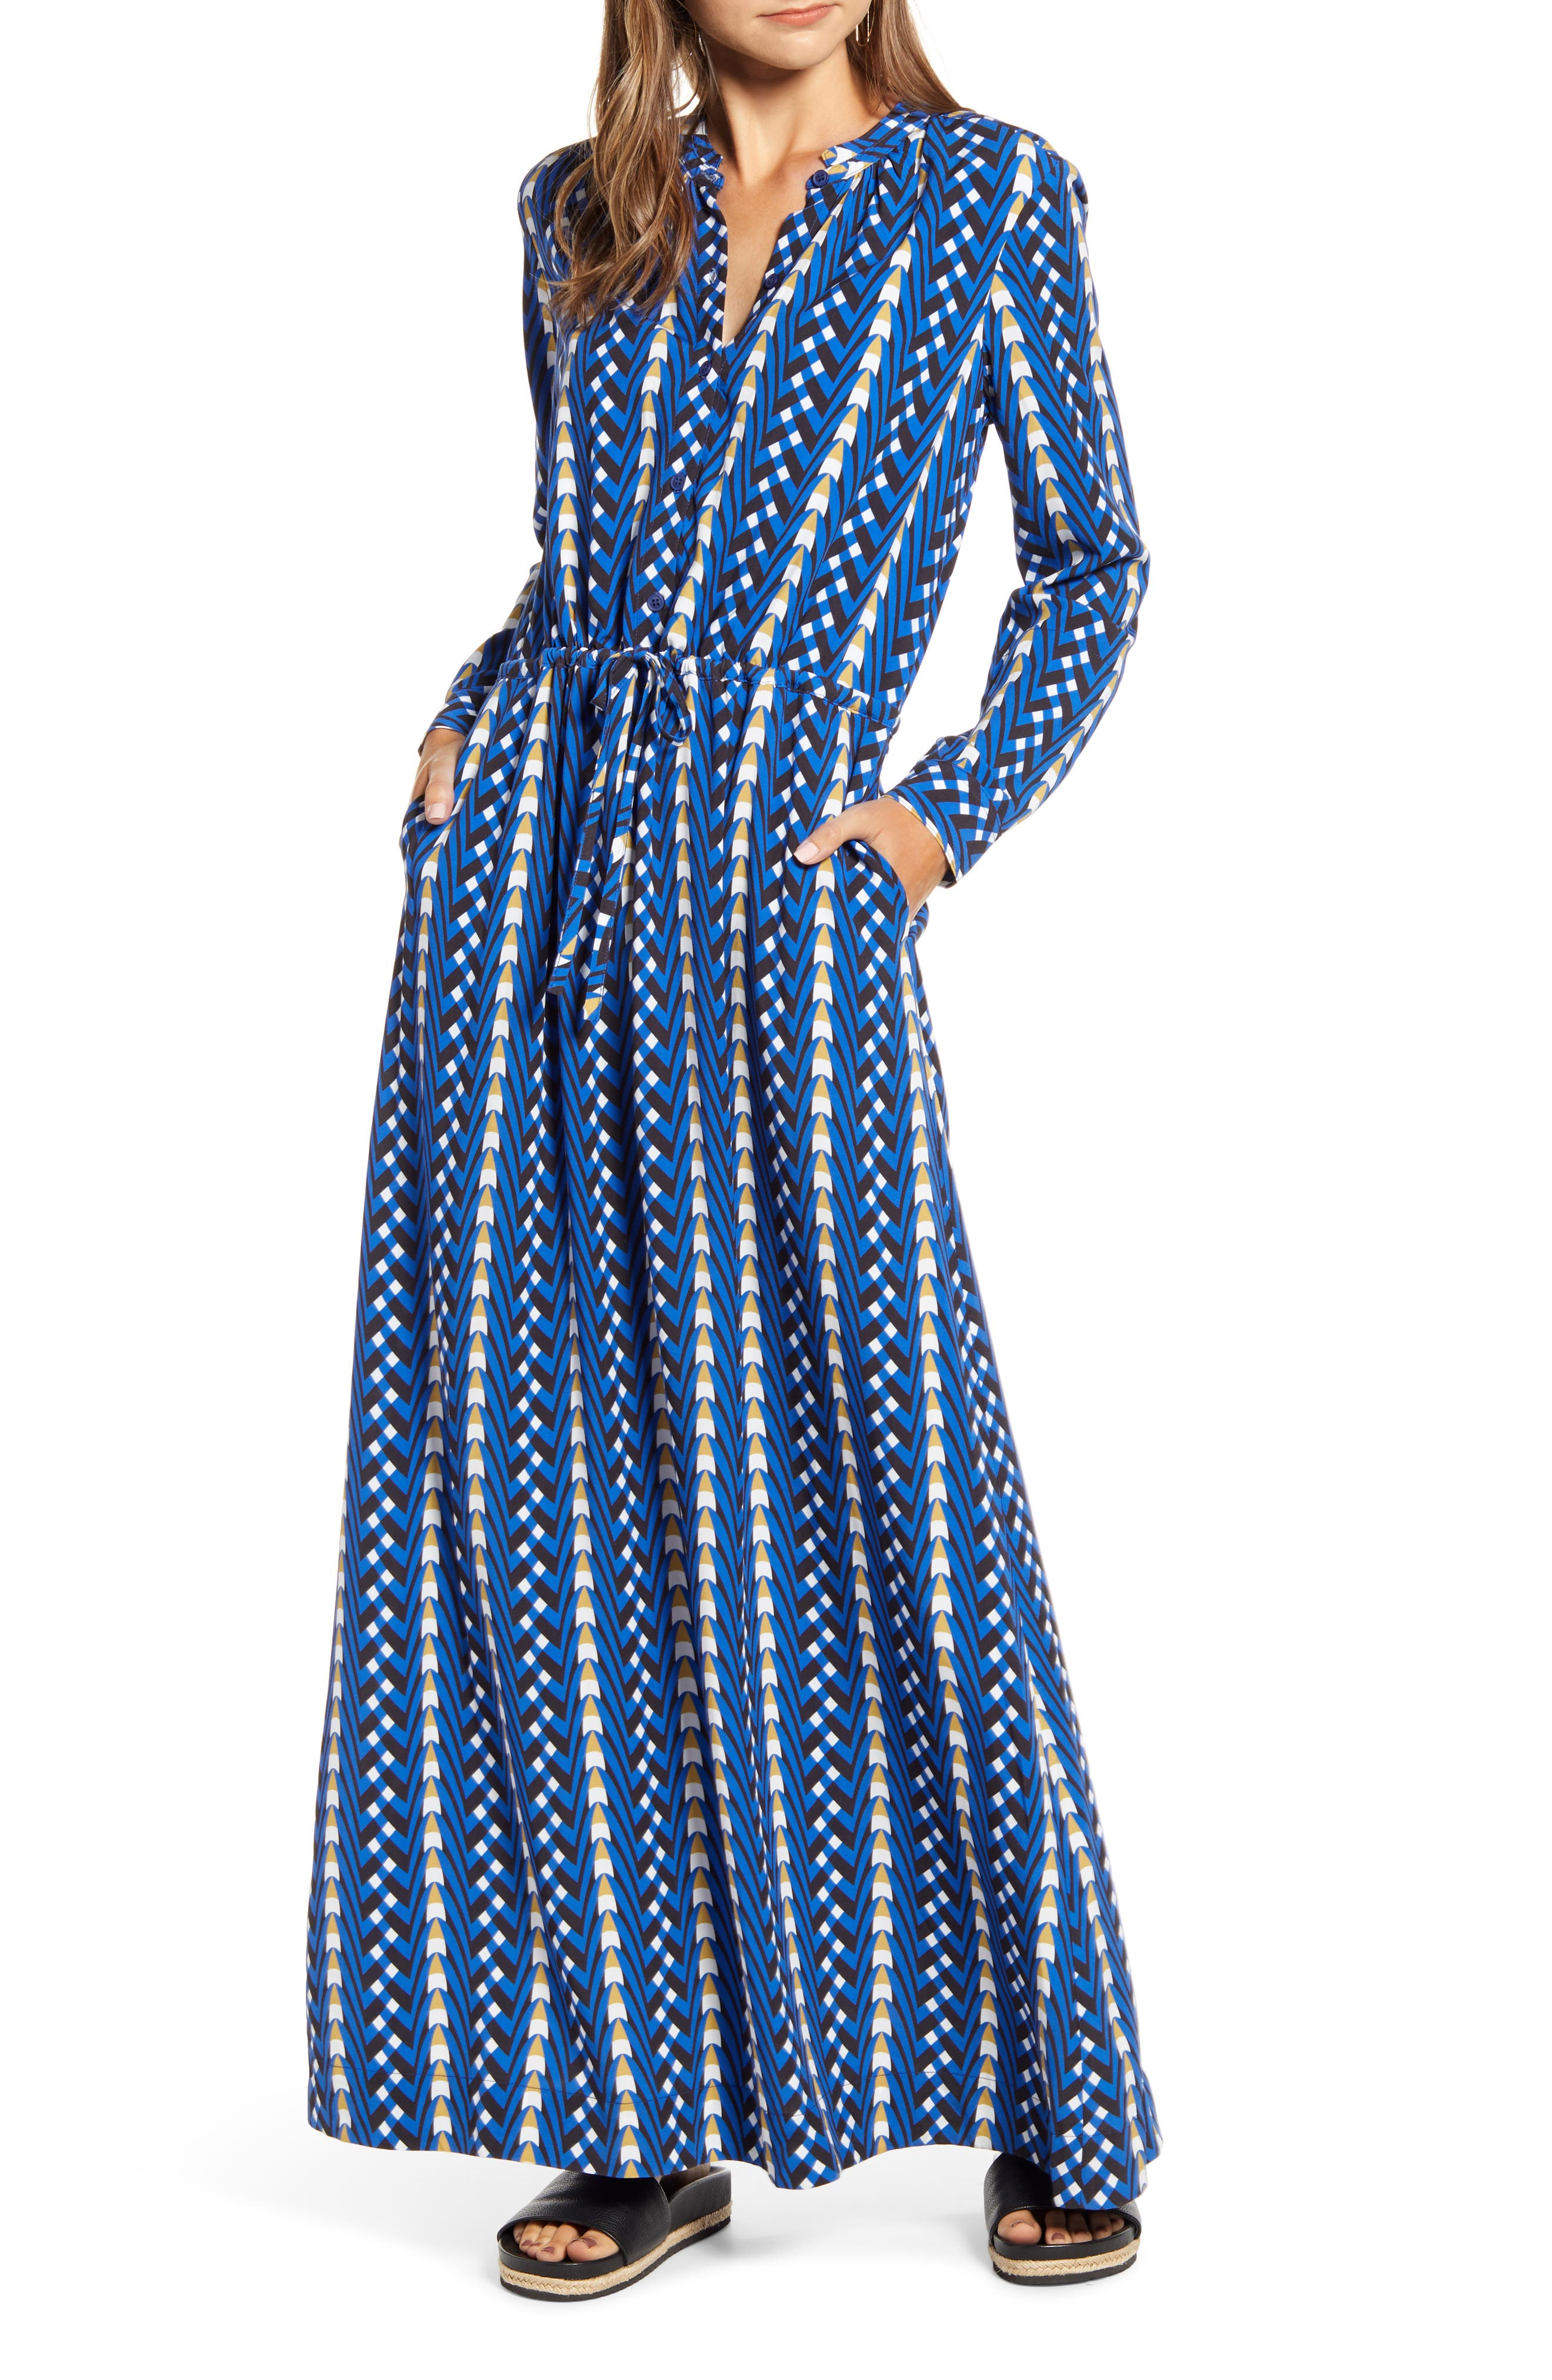 70s Prom, Formal, Evening, Party Dresses Womens The Odells Long Sleeve Button Maxi Dress $298.00 AT vintagedancer.com